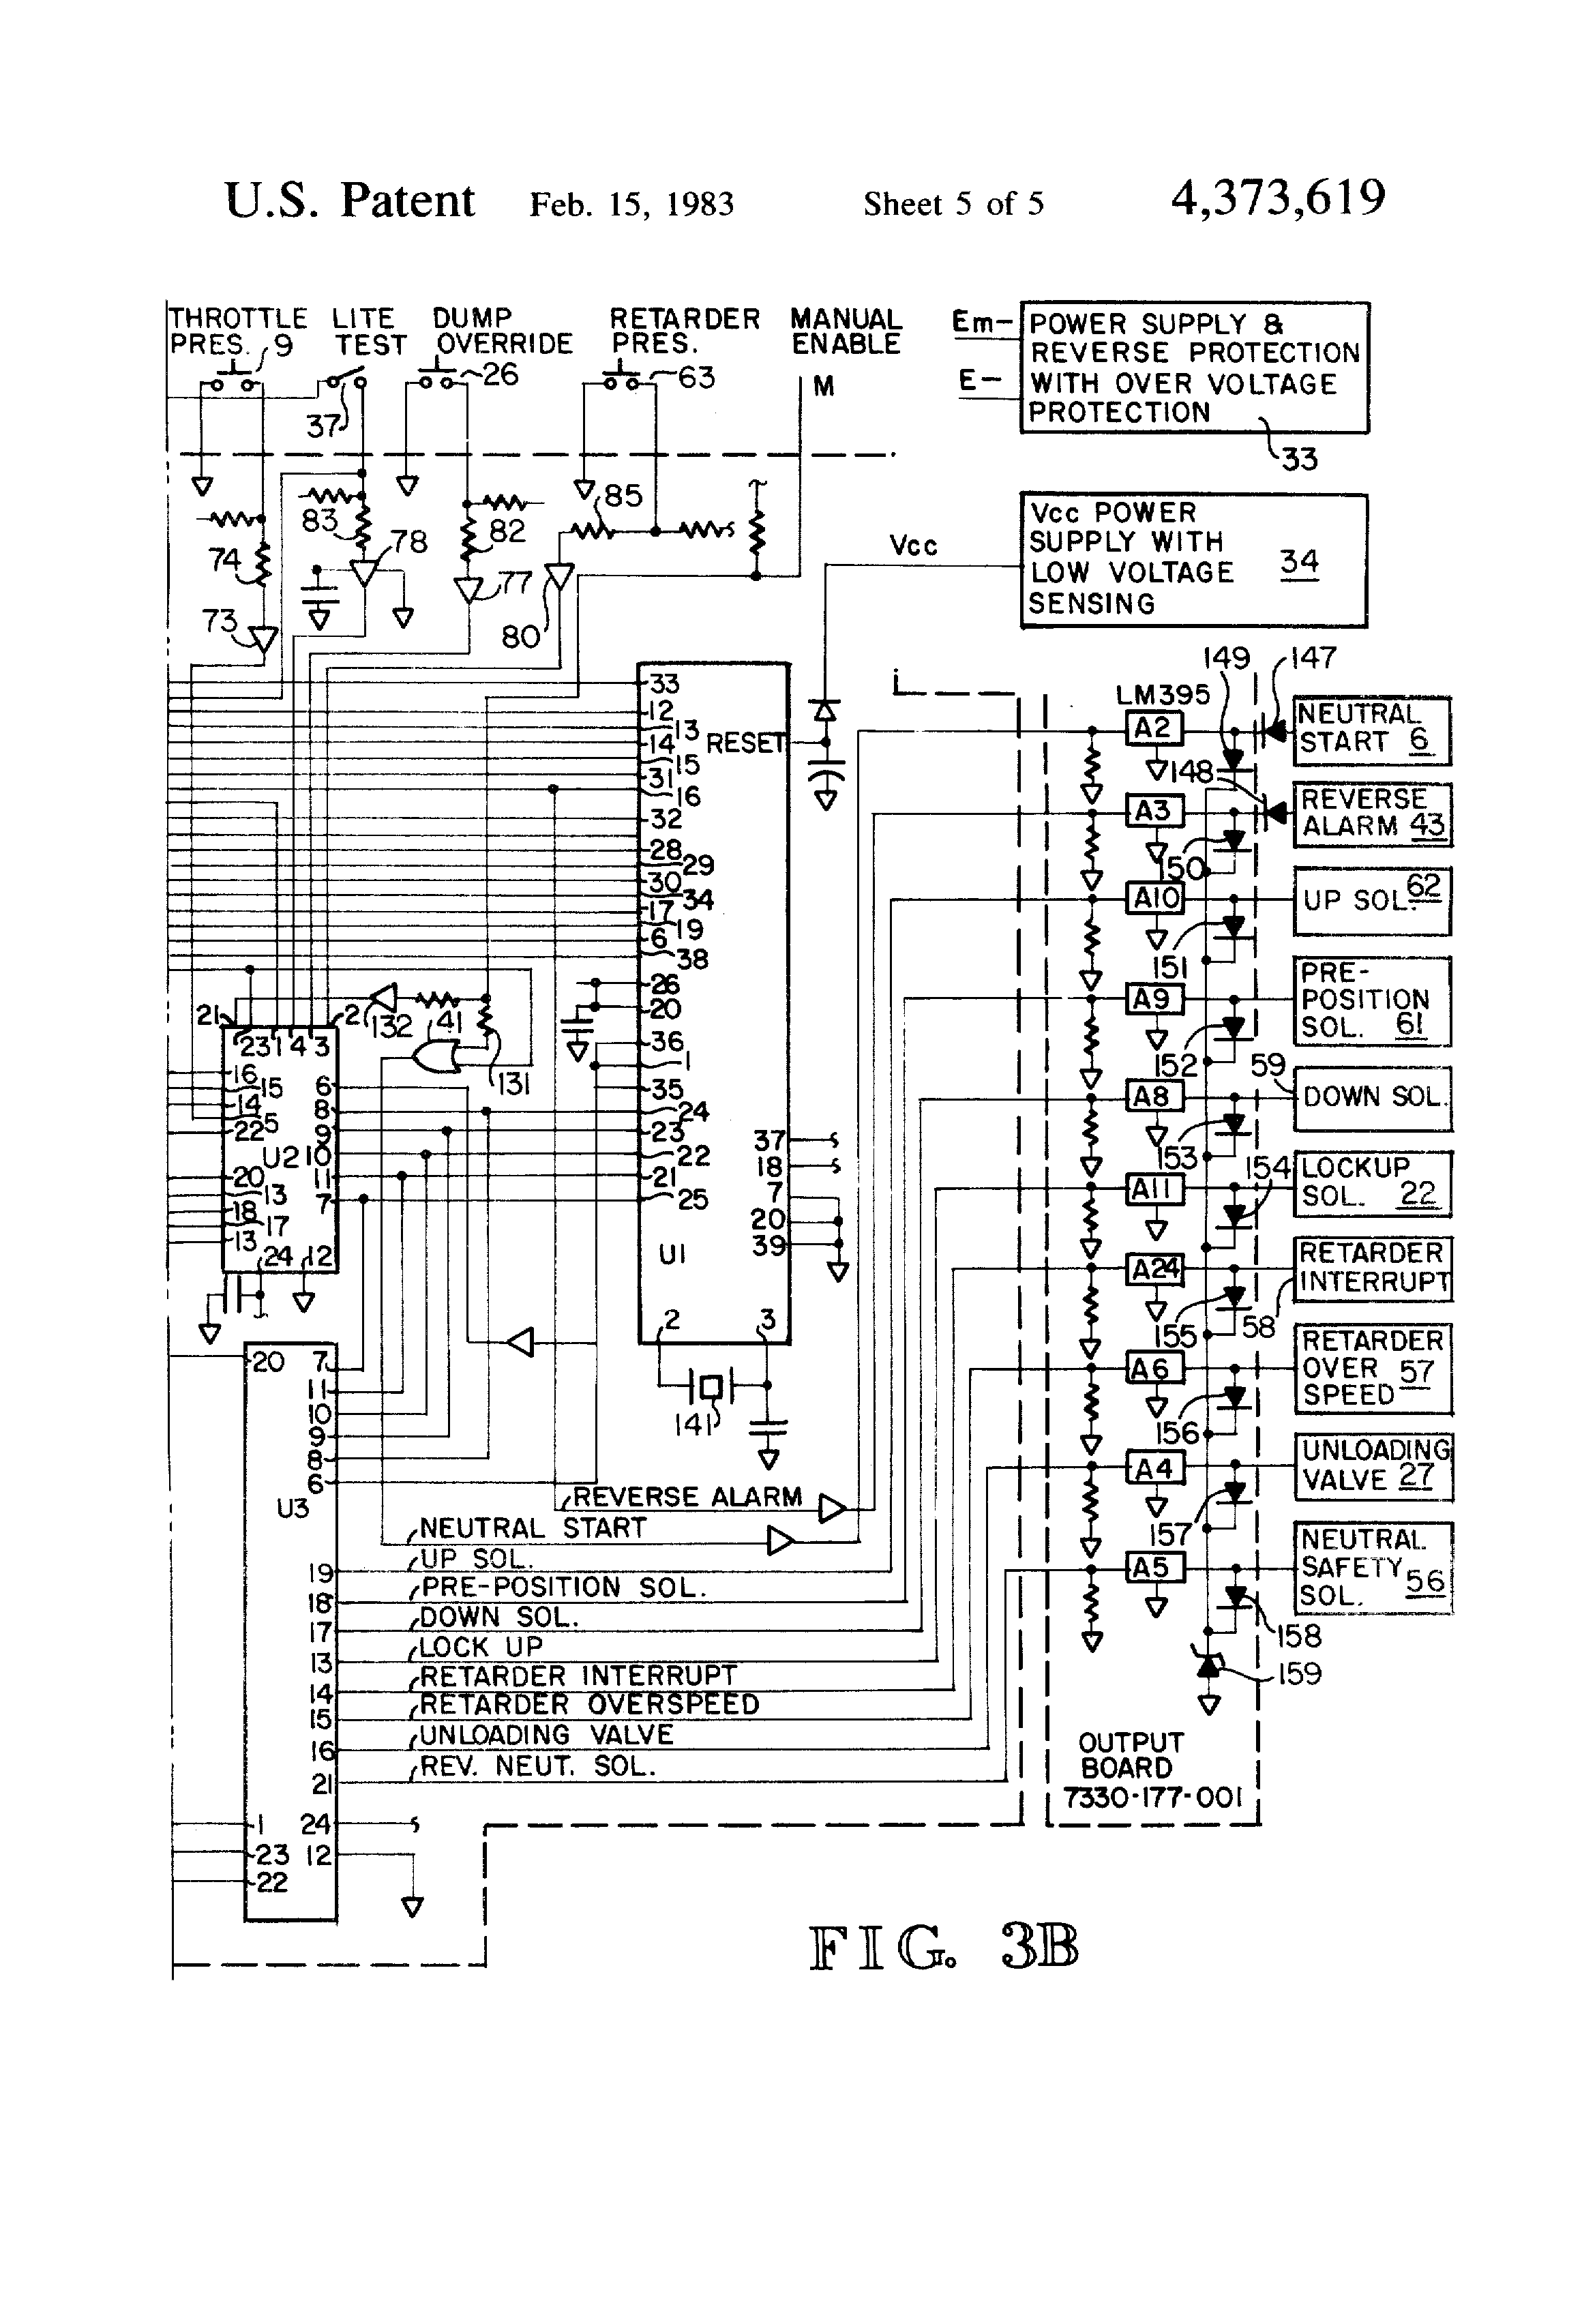 US4373619 5 hino wiring diagram wiringdiagrams hino wiring diagram schematic at mifinder.co